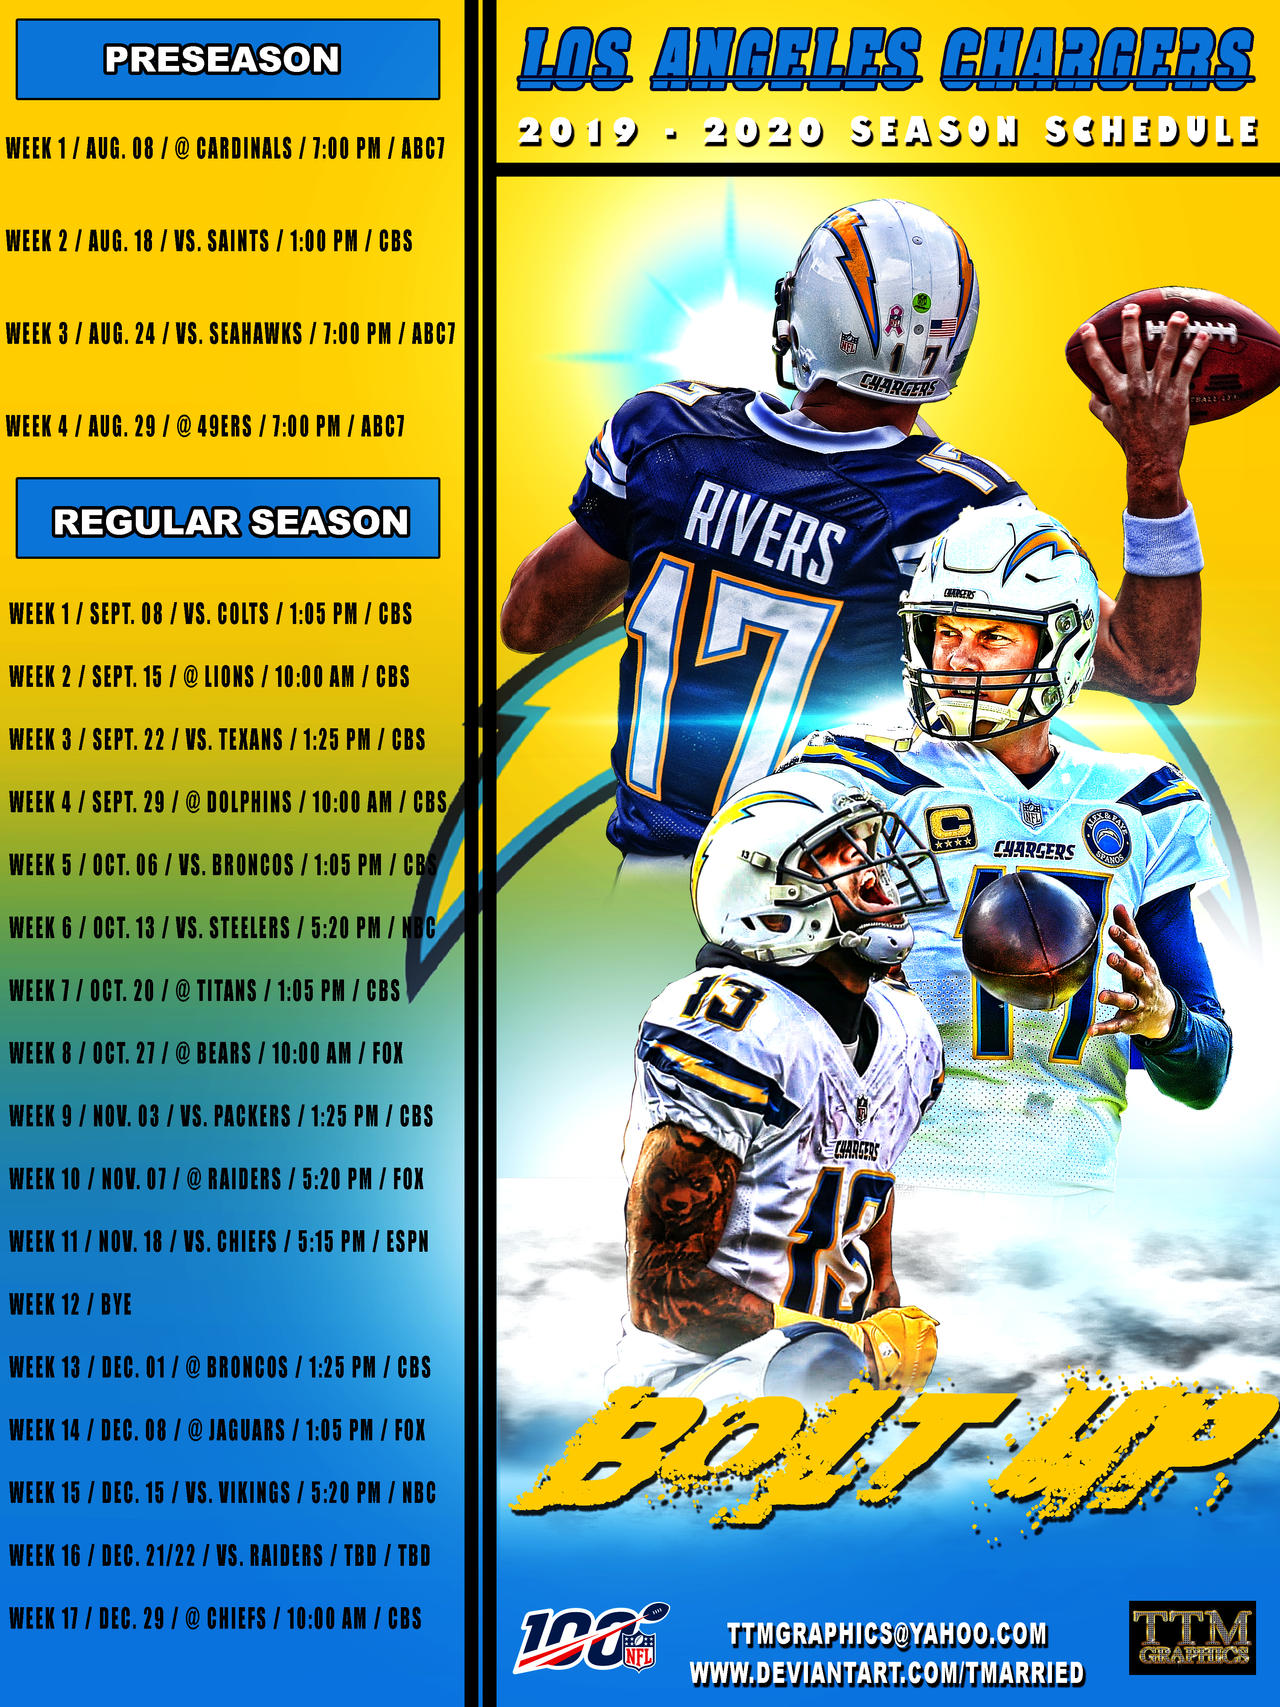 Chargers Schedule 2020.2019 2020 Season Schedule Los Angeles Chargers By